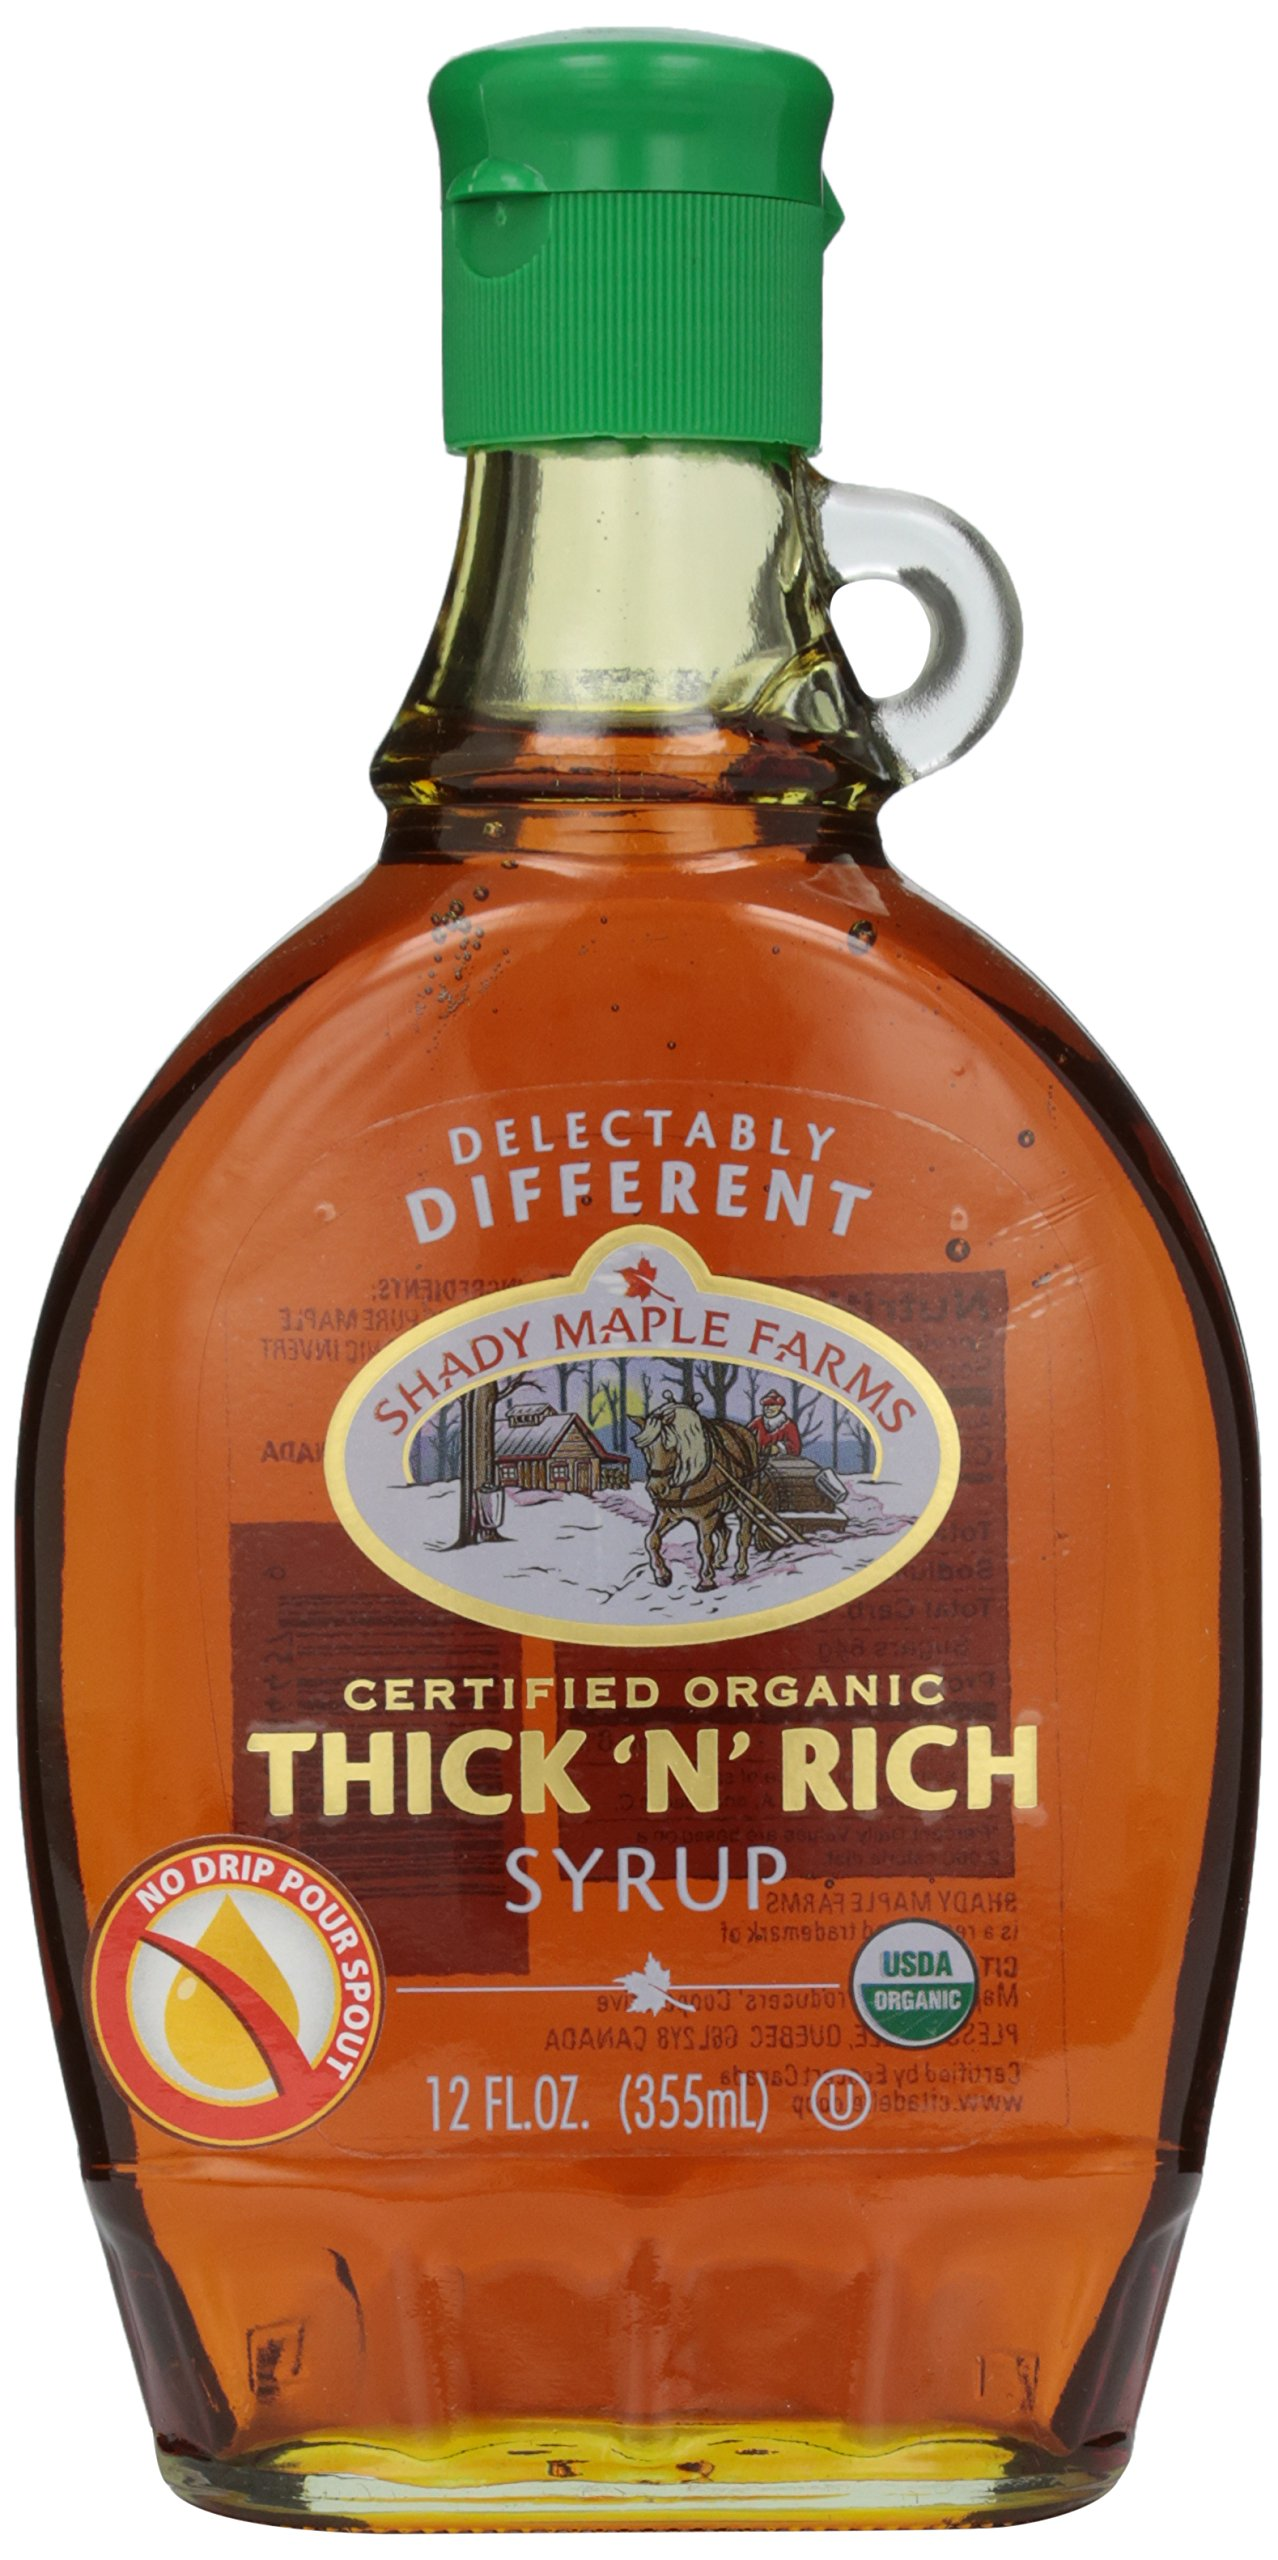 Shady Maple Farms, Certified Organic Thick 'N Rich, 12 oz